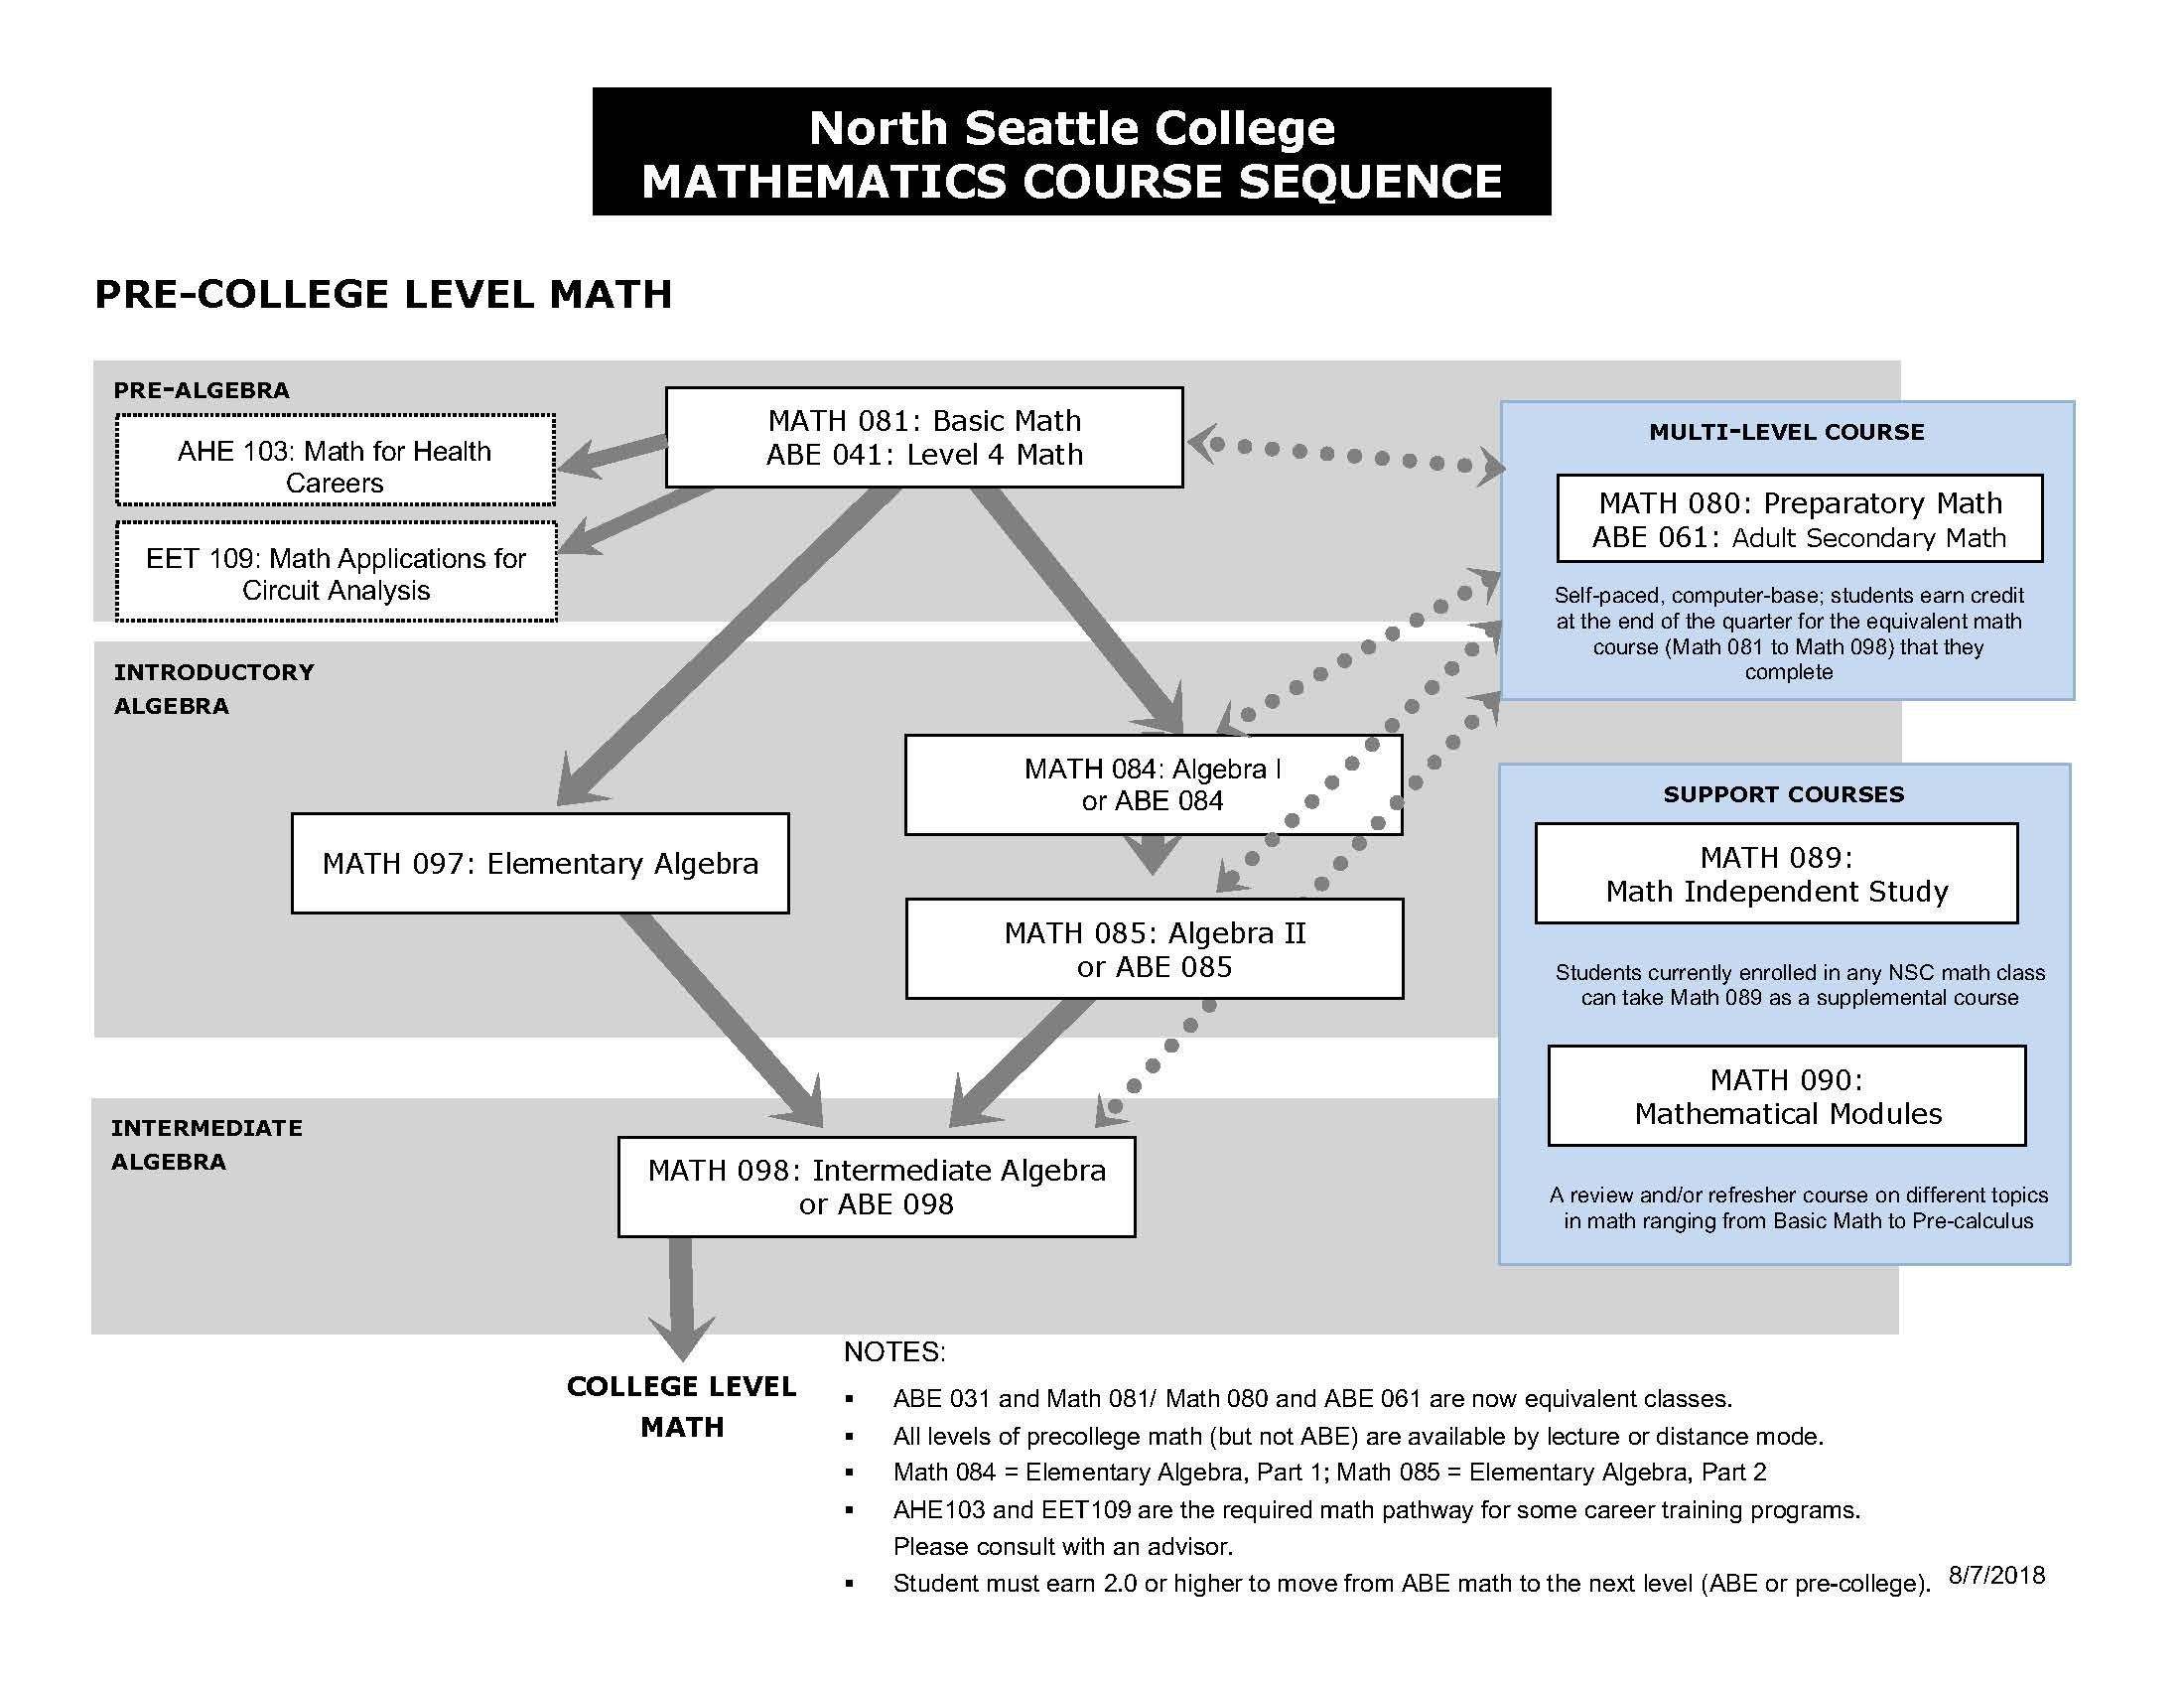 North Seattle College Mathematics Course Sequence